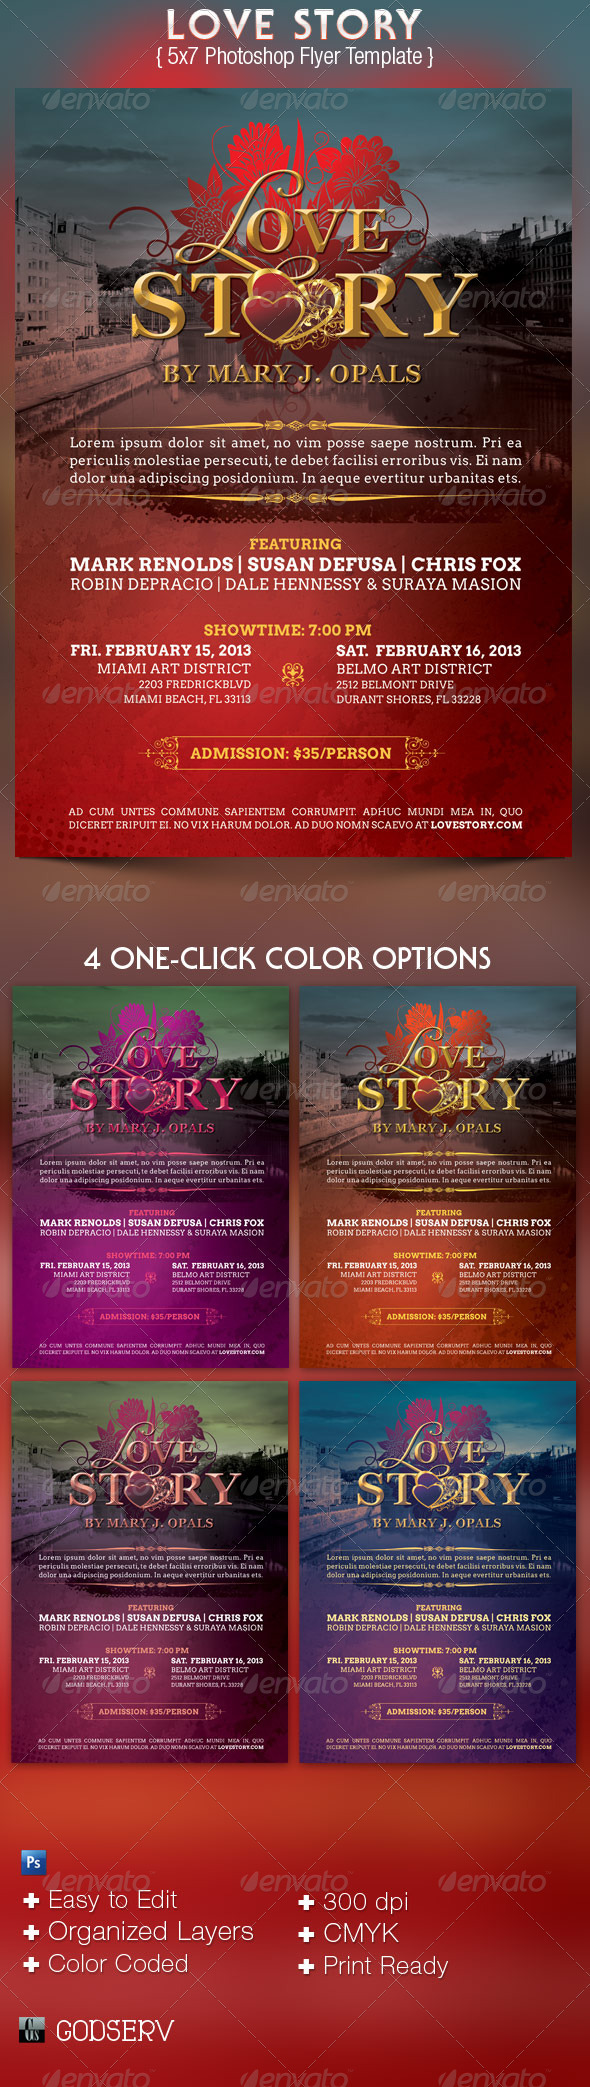 Love Story Flyer Template - Holidays Events